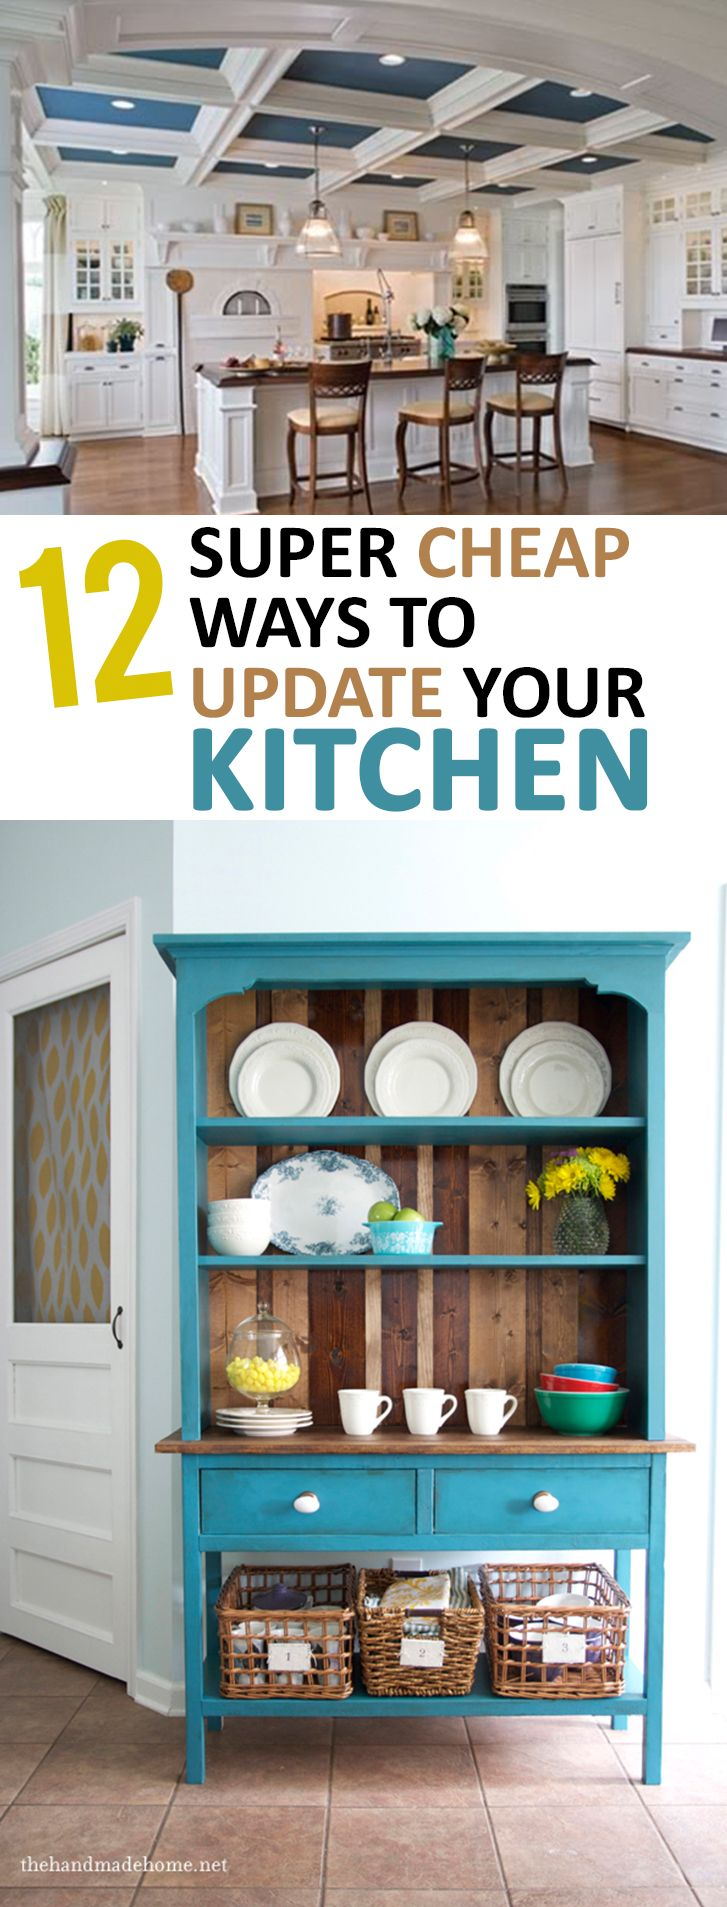 Kitchen make your kitchen dazzle with pertaining to kitchen design - 12 Ways To Update Your Kitchen